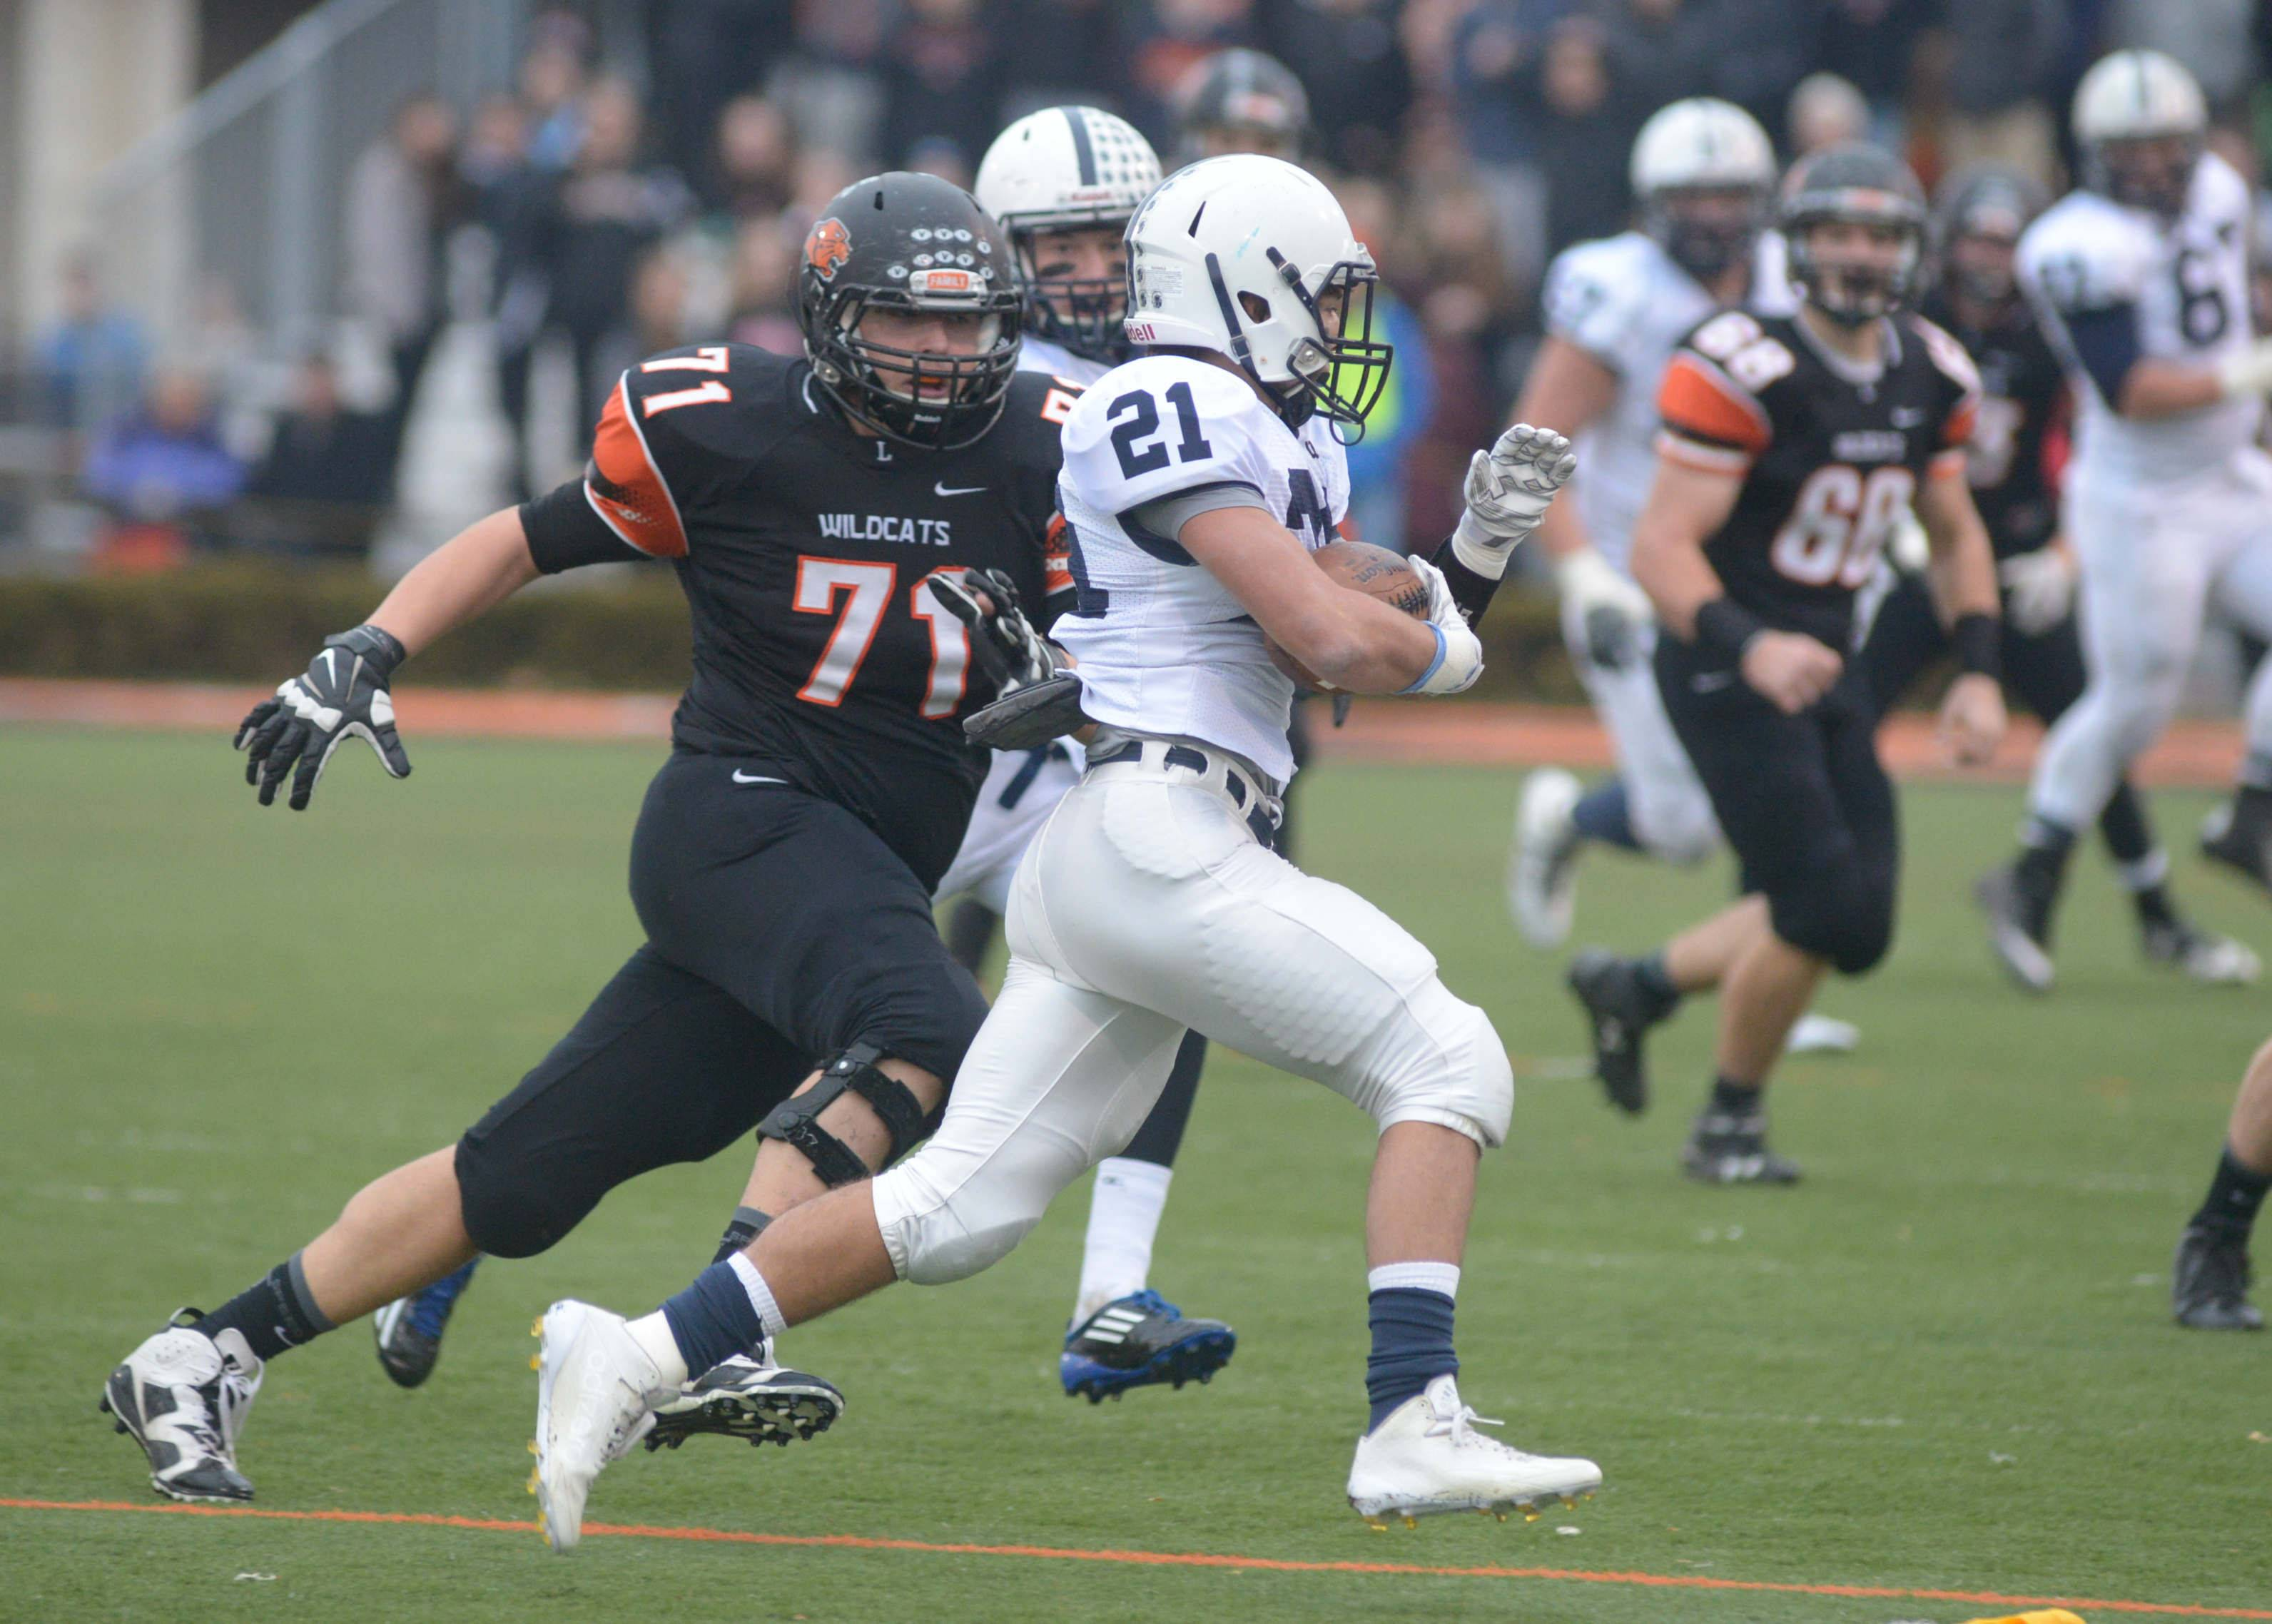 Cary-Grove's defense confuses, frustrates its opponents